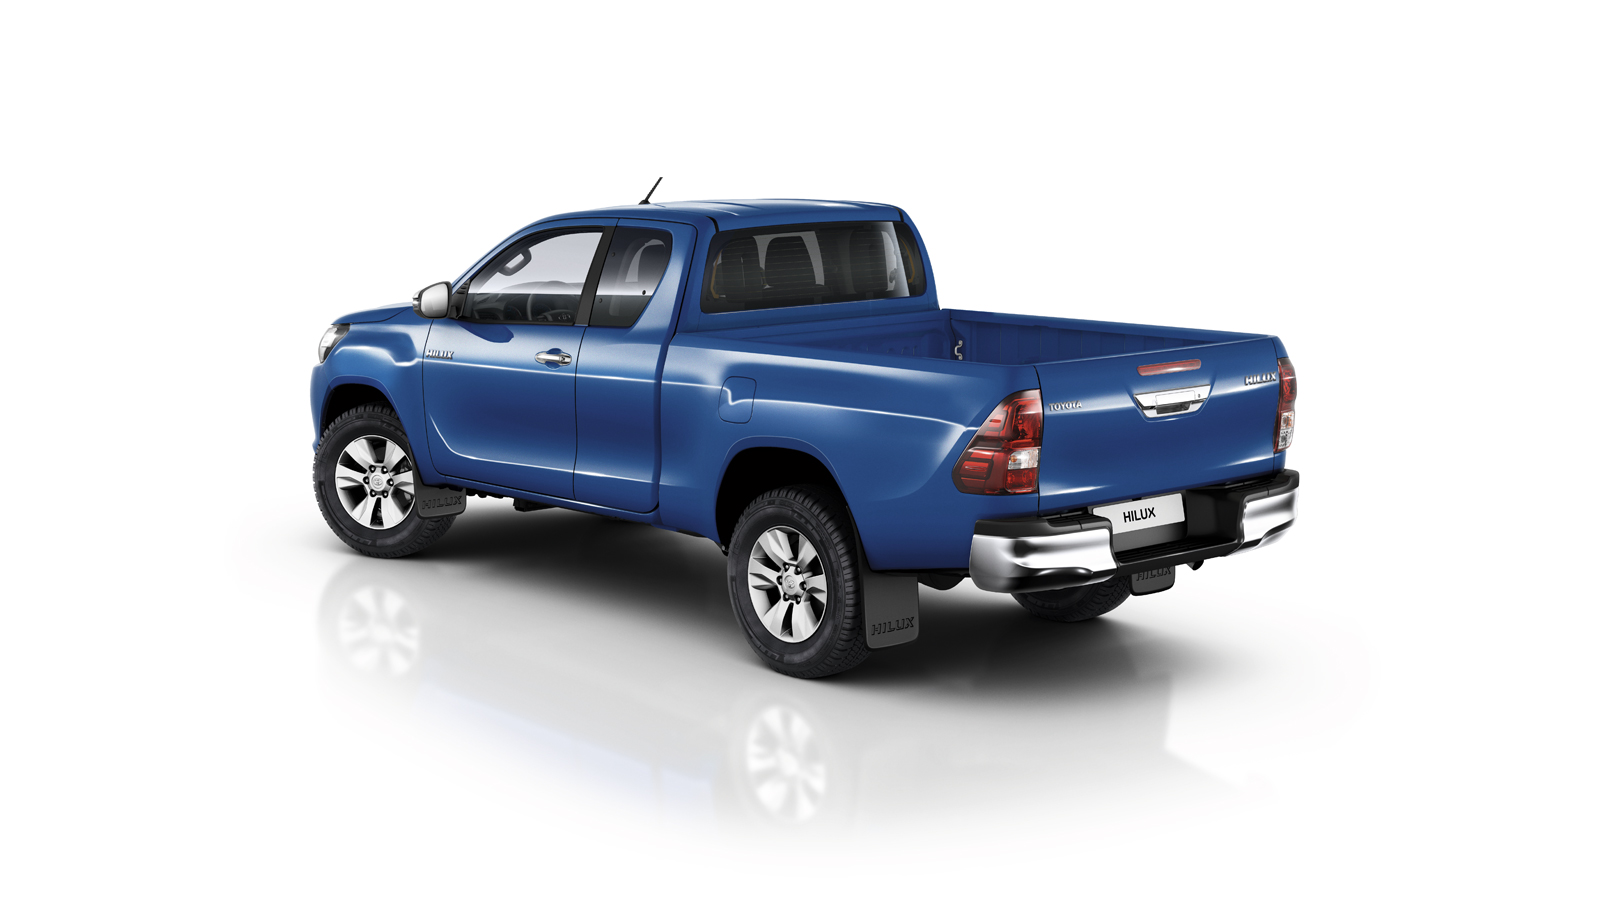 toyota-Hilux-2016-exterior-tme-017-a-ful